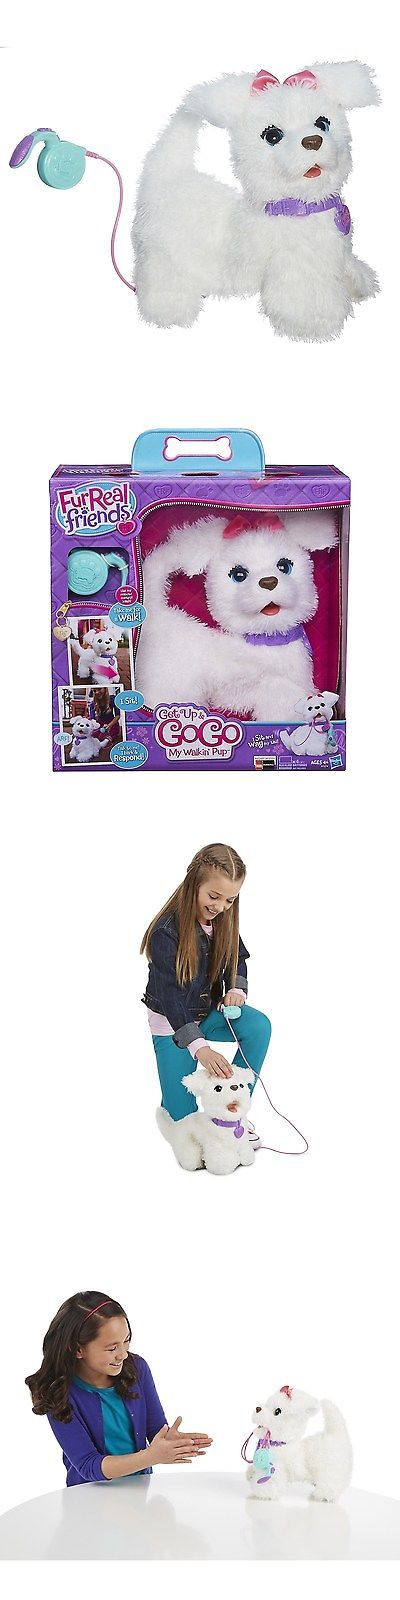 FurReal Friends 38288: New Furreal Friends Get Up And Gogo My Walkin Pup Pet Interactive Plush Dog -> BUY IT NOW ONLY: $94.45 on eBay!